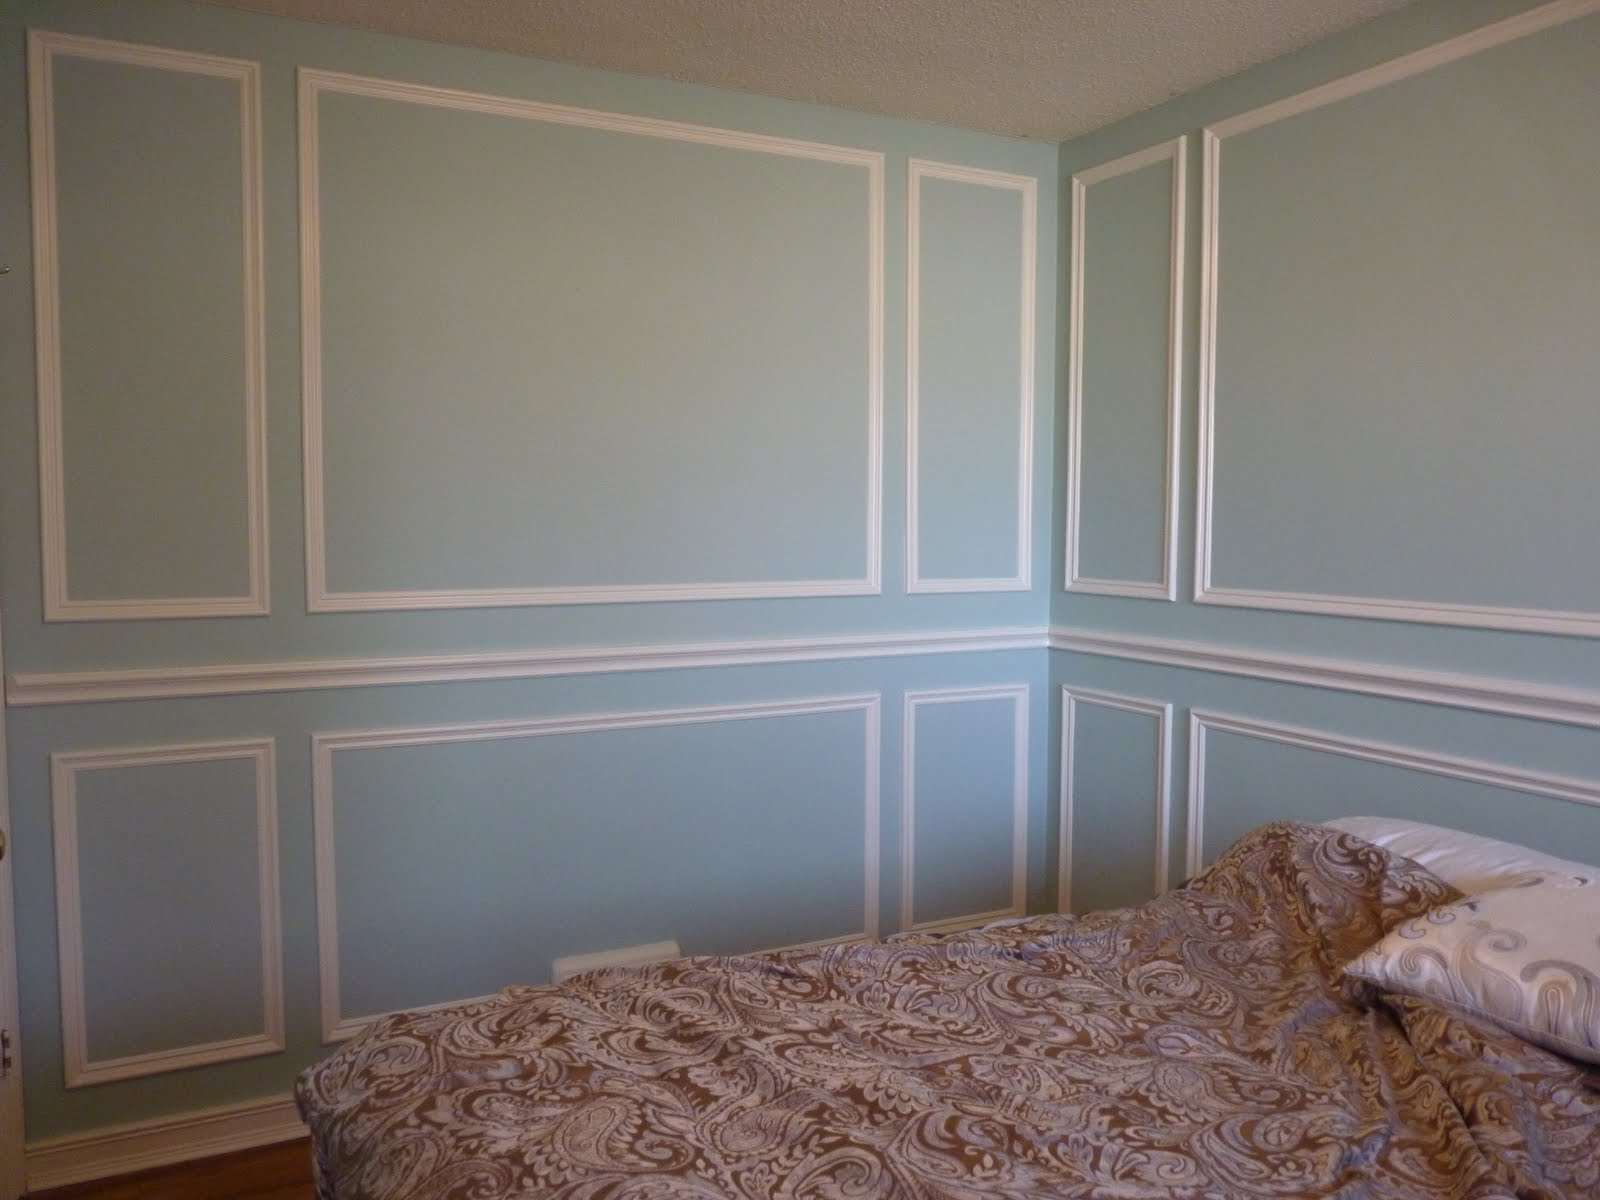 d i y d e s i g n installing molding panels. Black Bedroom Furniture Sets. Home Design Ideas